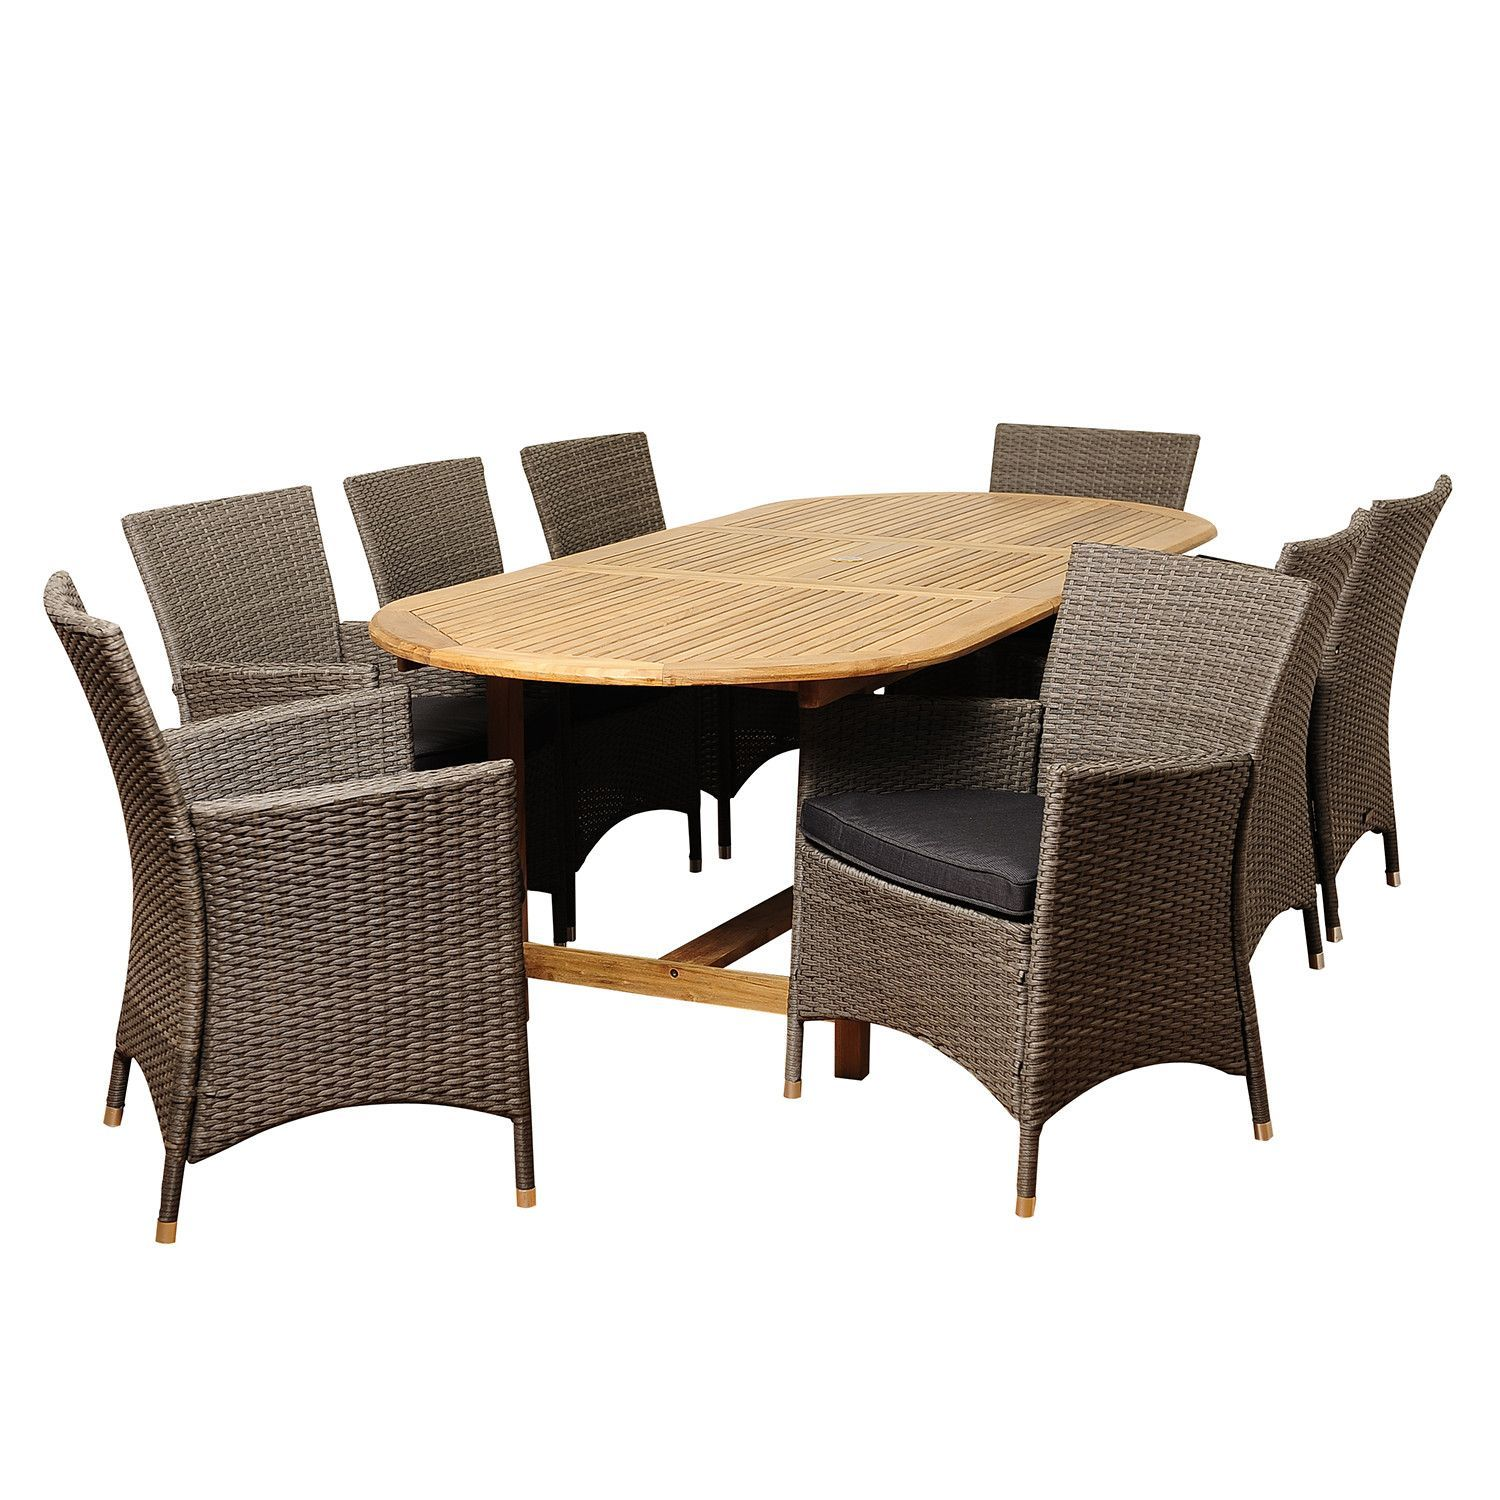 Vermont Extendable Garden Table And Chair Set: Rayford 9 Piece Teak/Wicker Extendable Oval Dining Set